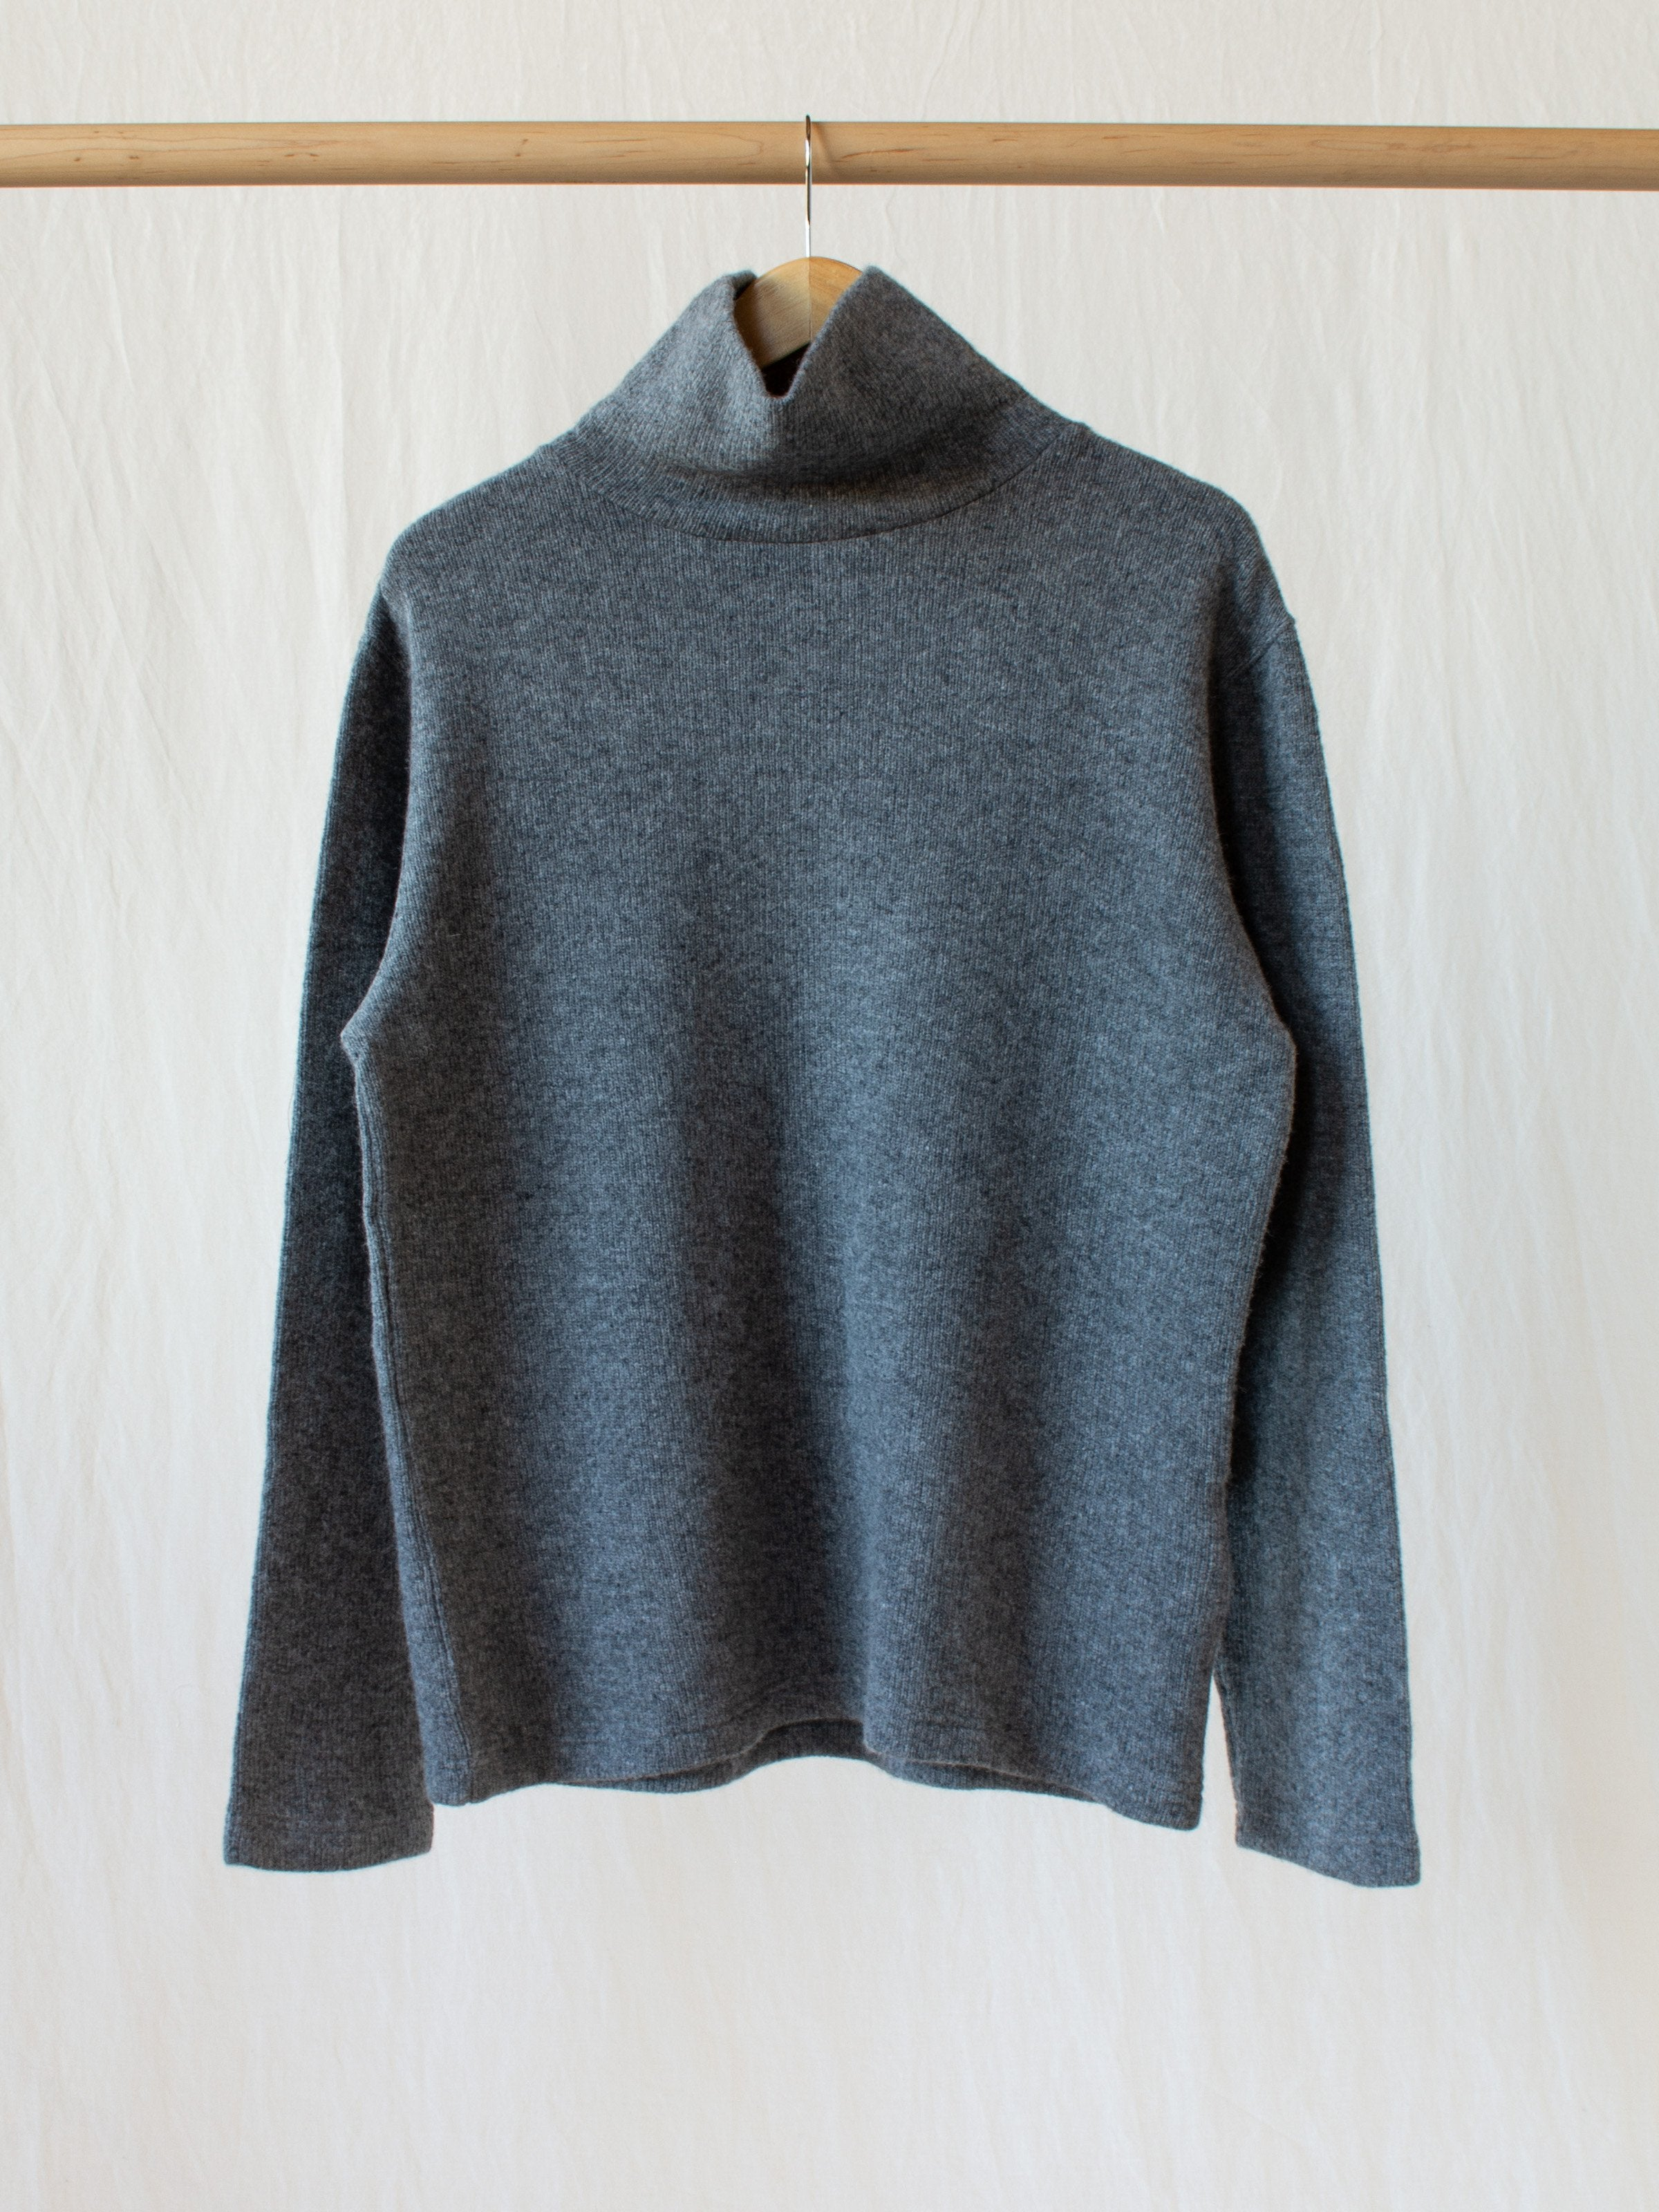 Wool Blend Turtleneck with Double Face Jersey Lining - Gray